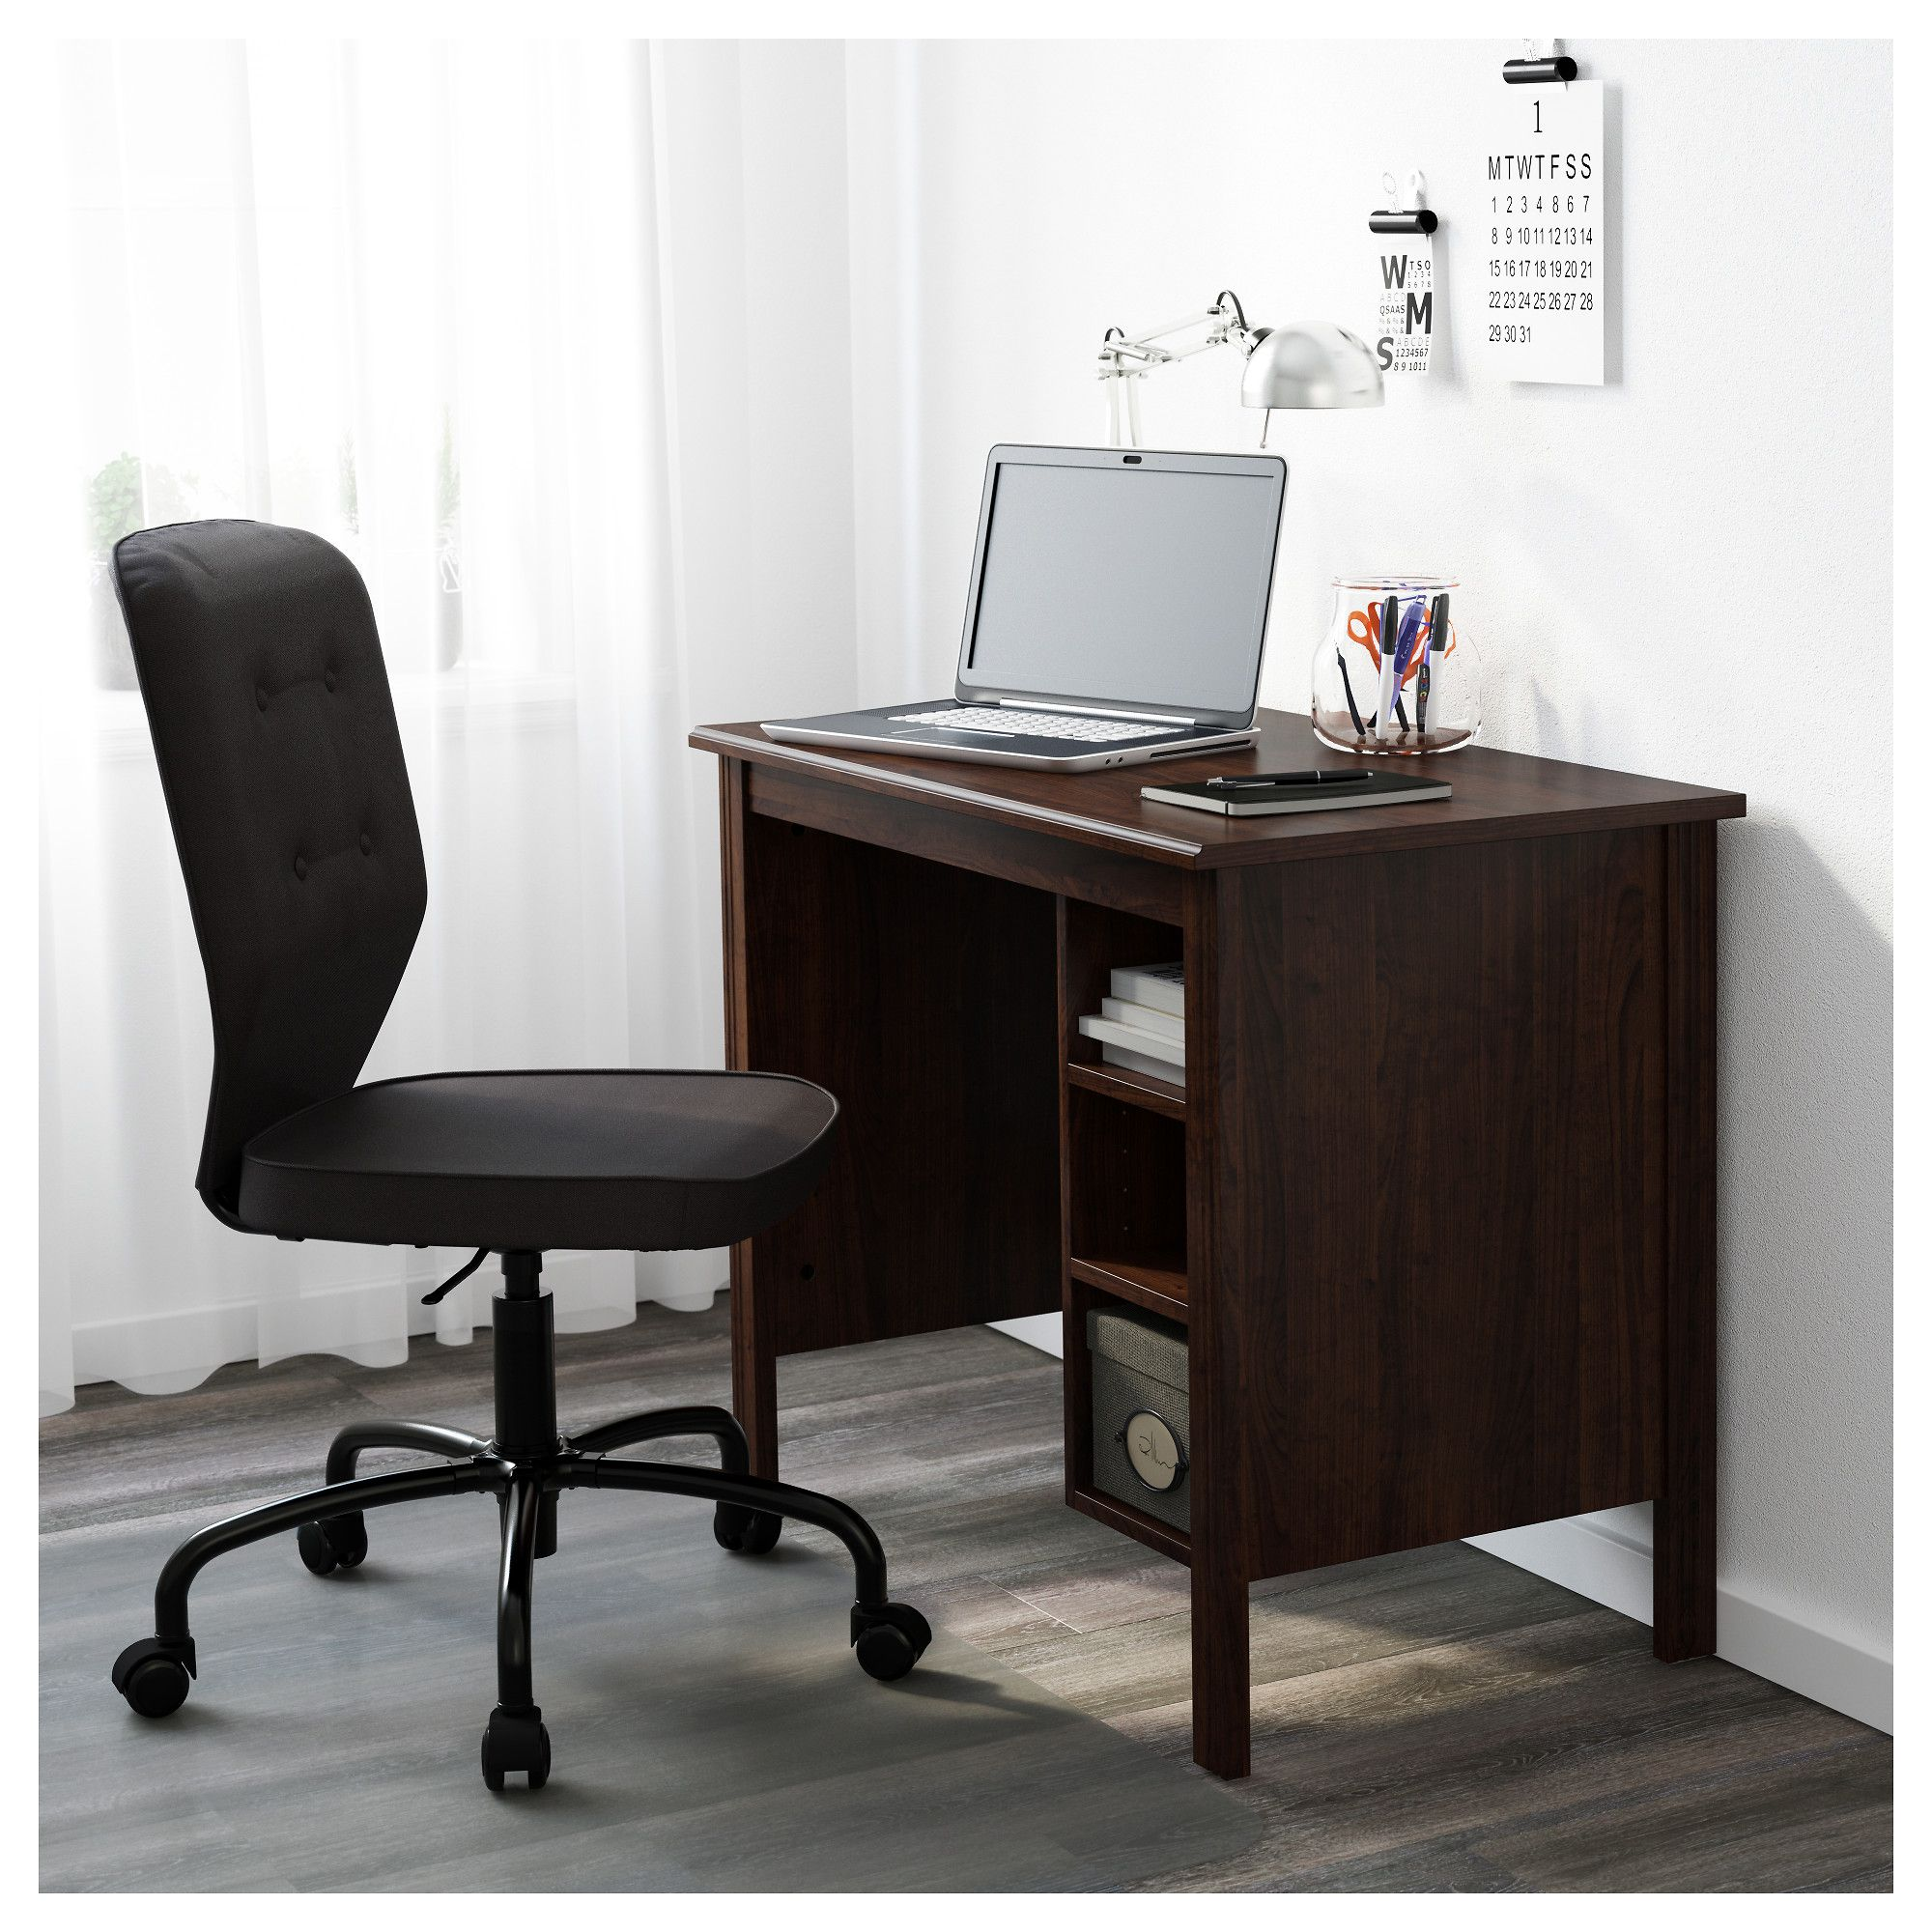 Ikea Brusali Brown Desk Small Home Offices Home Office Design